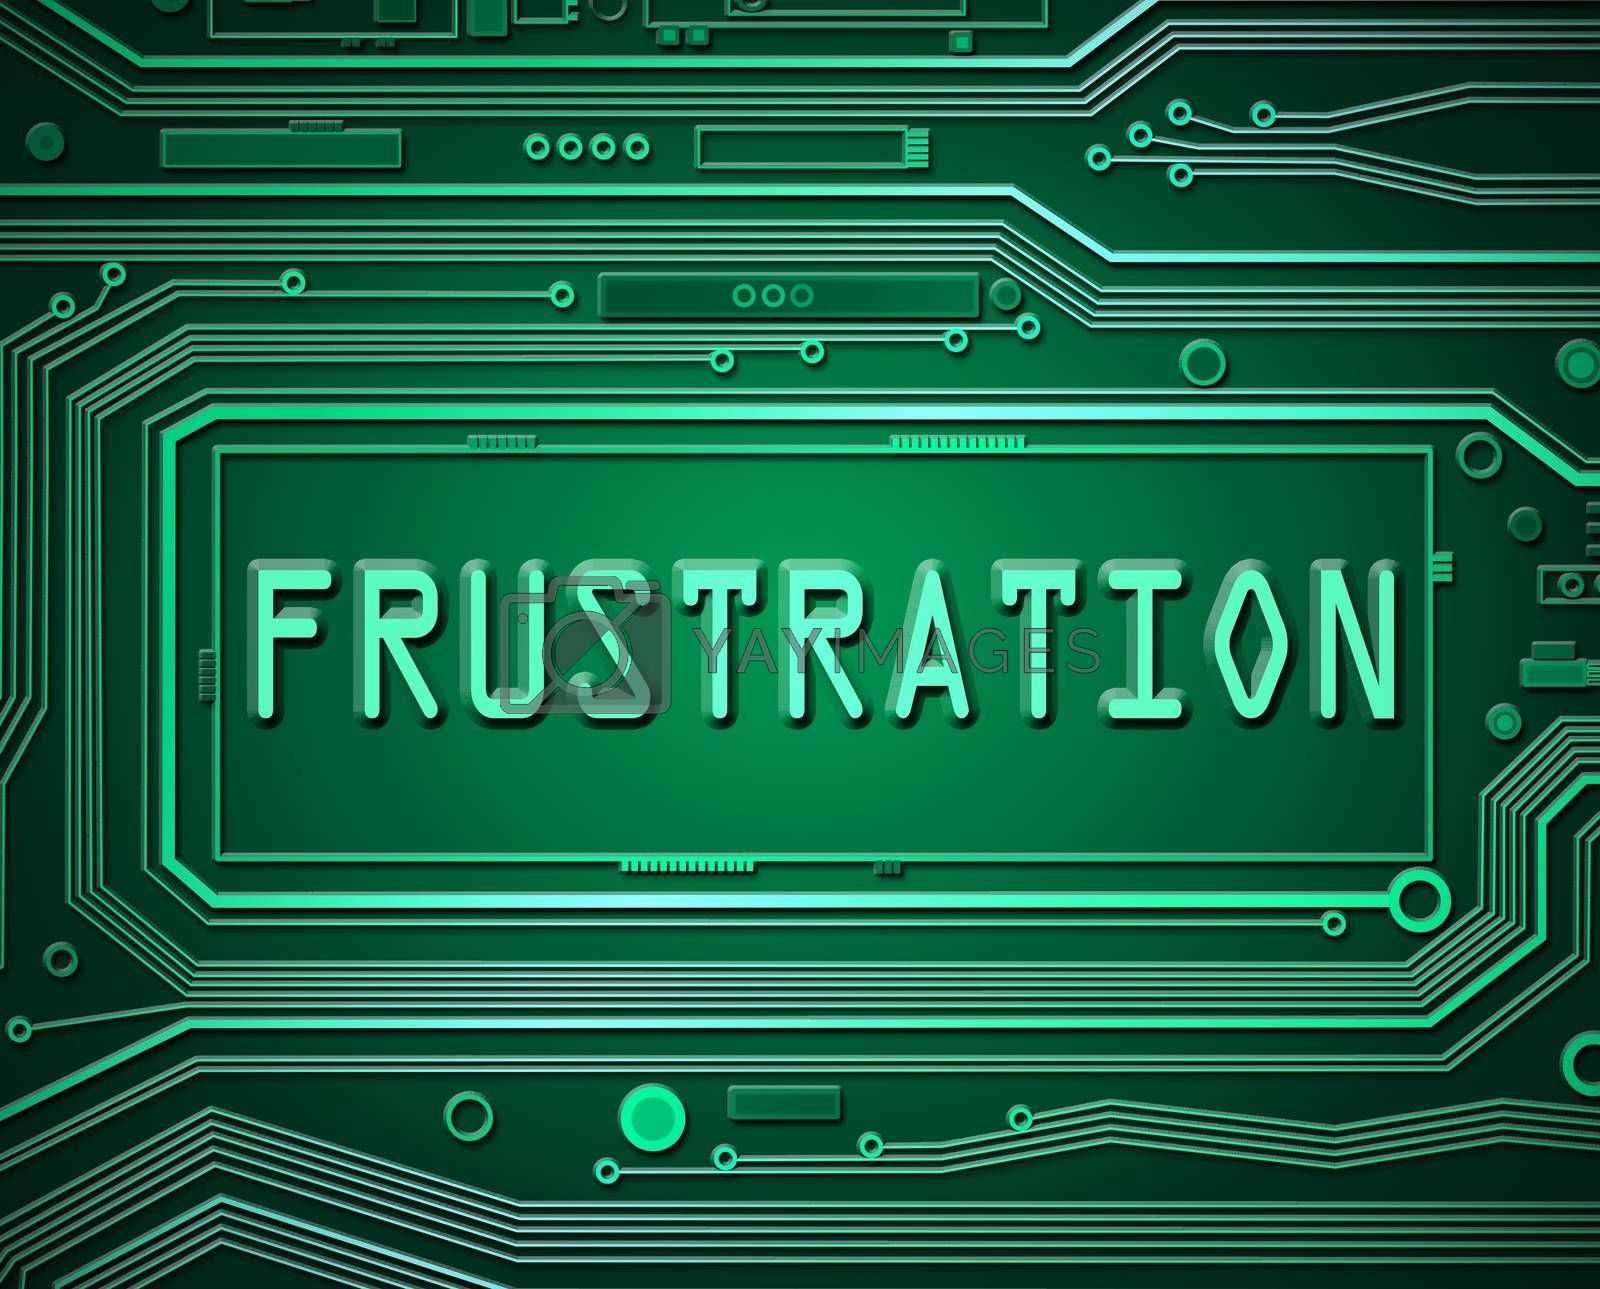 Abstract style illustration depicting printed circuit board components with a frustration.